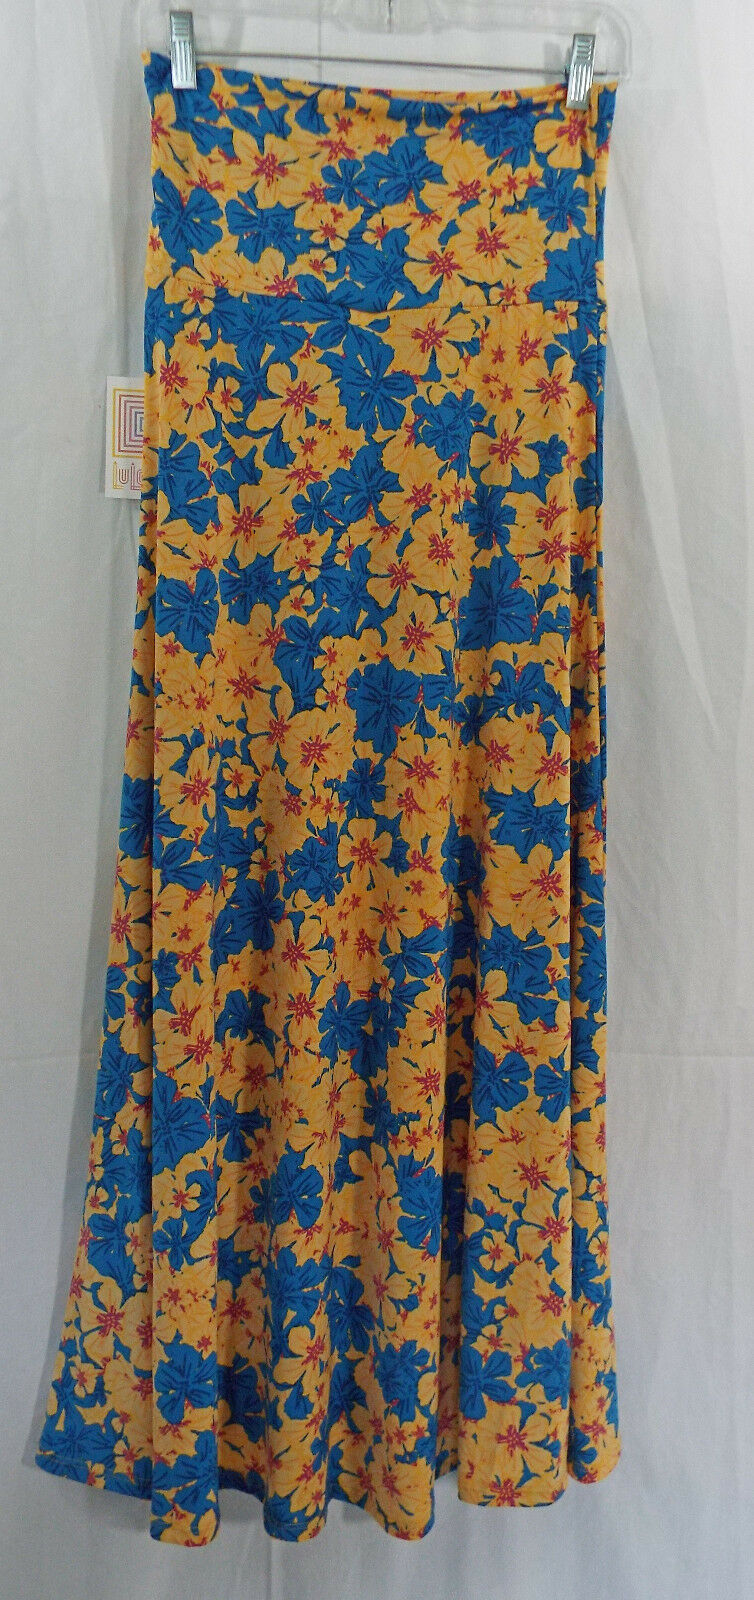 Women's LuLaRoe bluee Yellow Flowers Floral Maxi Skirt In XS NWT